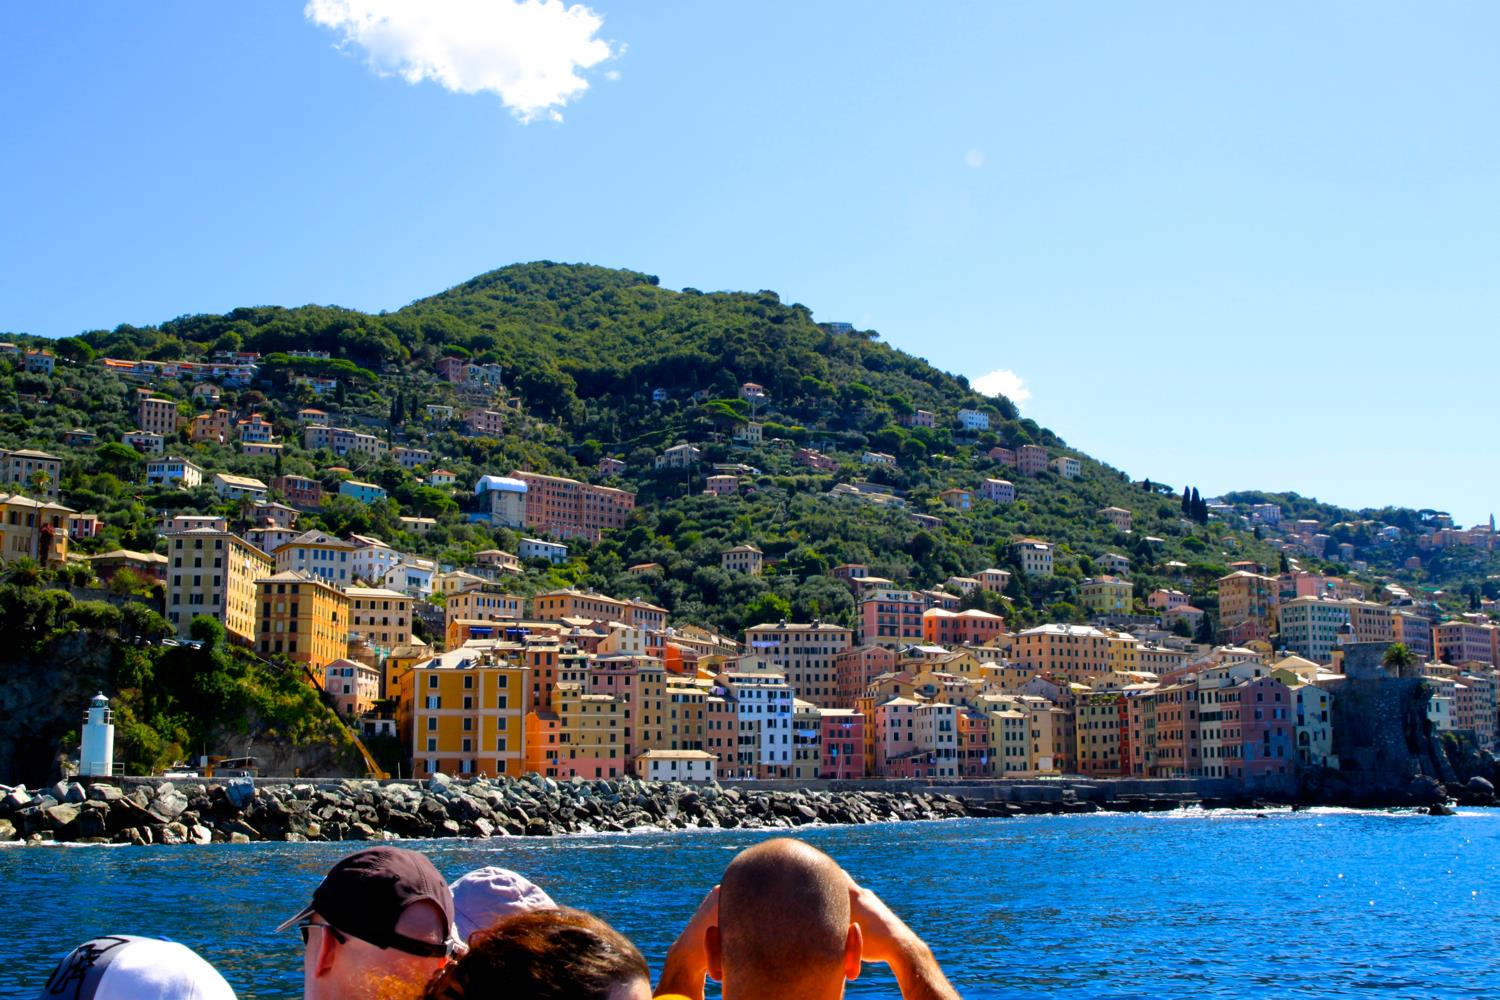 Camogli harbour view from ferry.